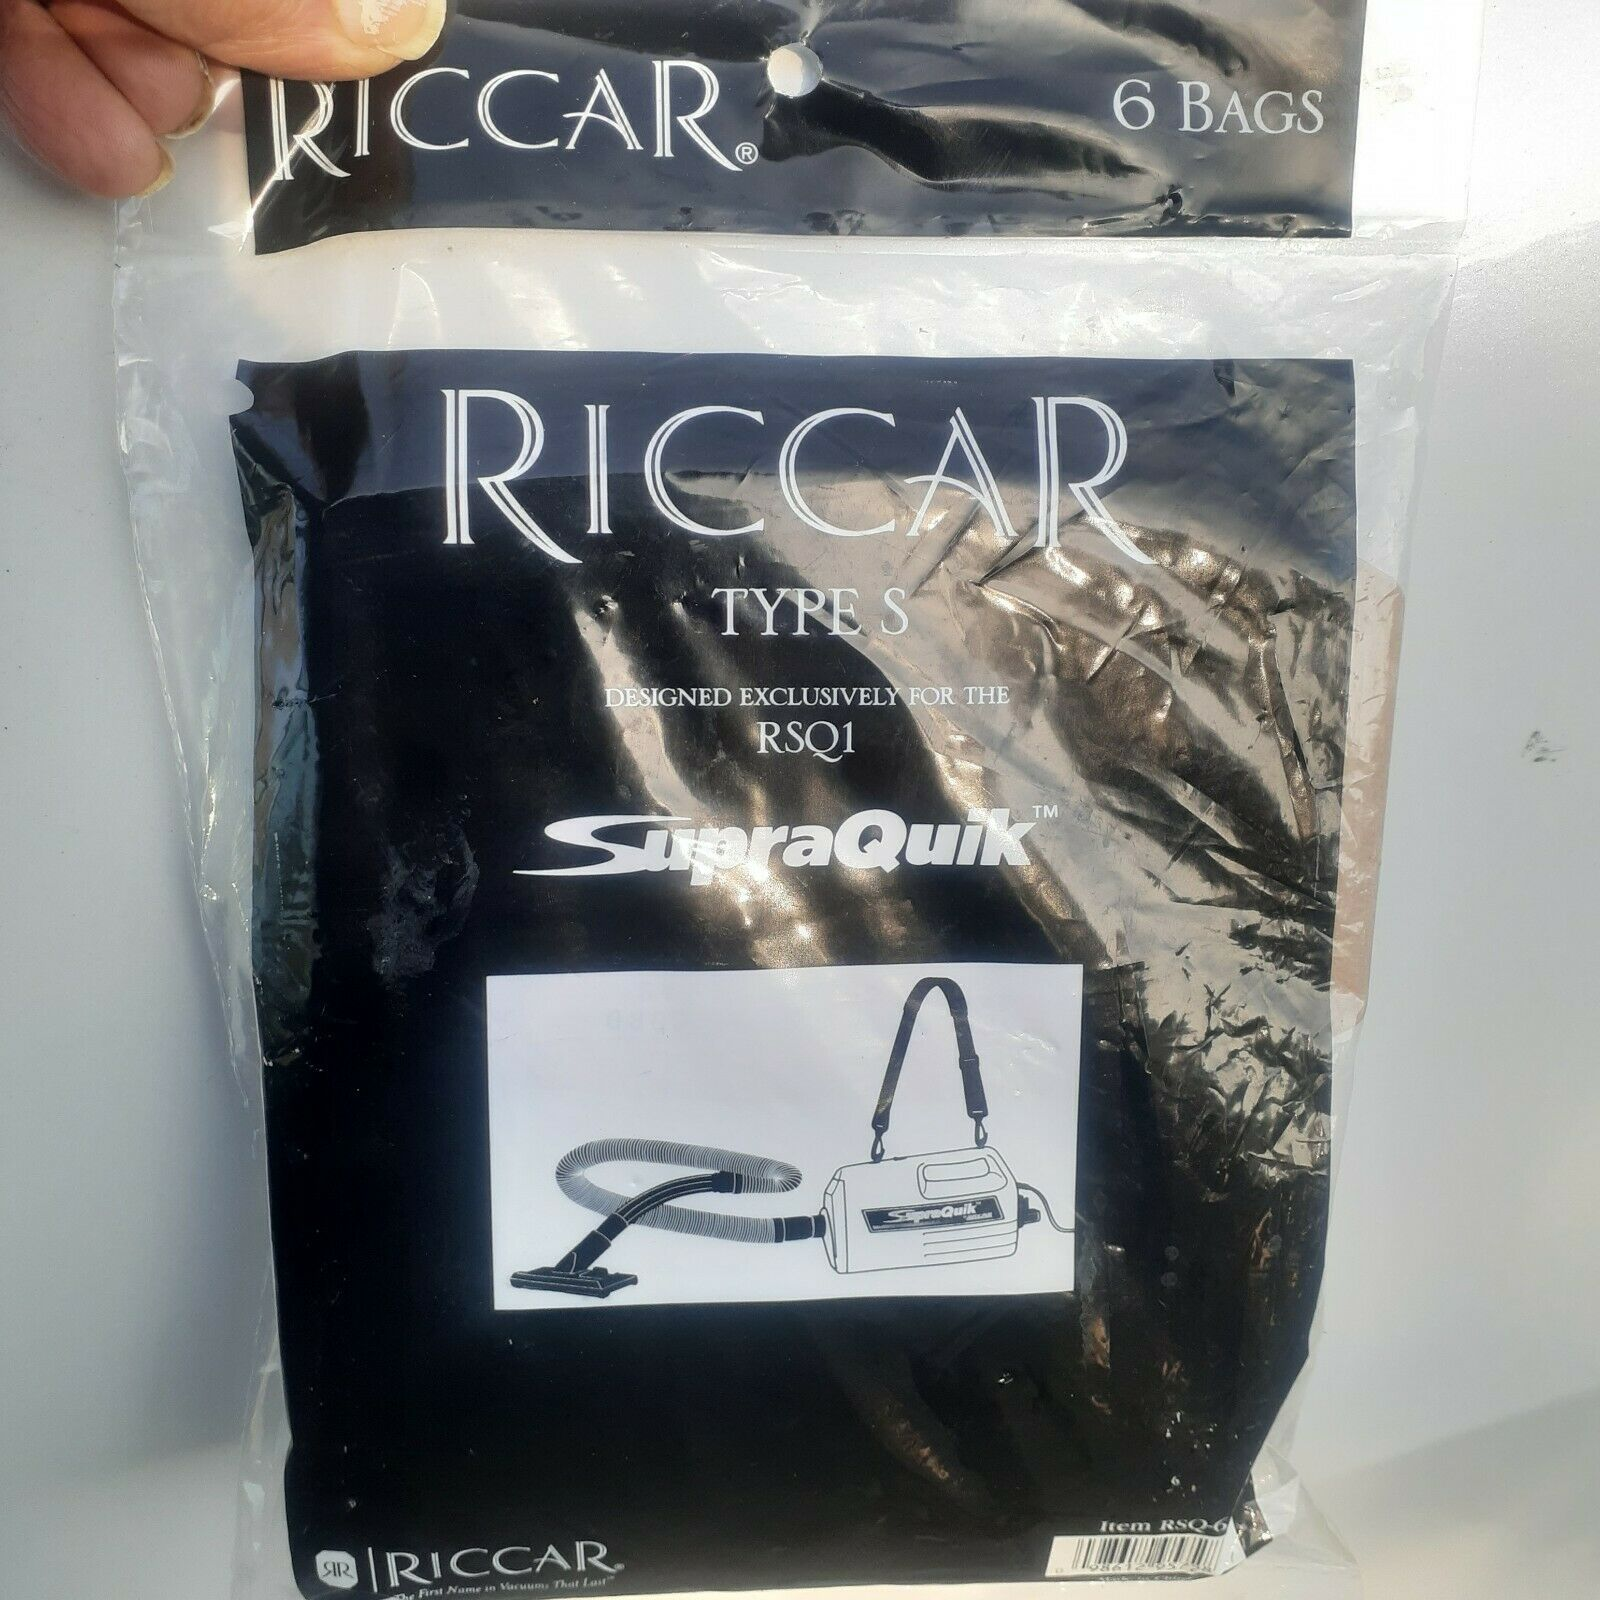 Primary image for 6-Pack Genuine Riccar Type S Vacuum Bags RSQ1 Supraquik  RSQ-6